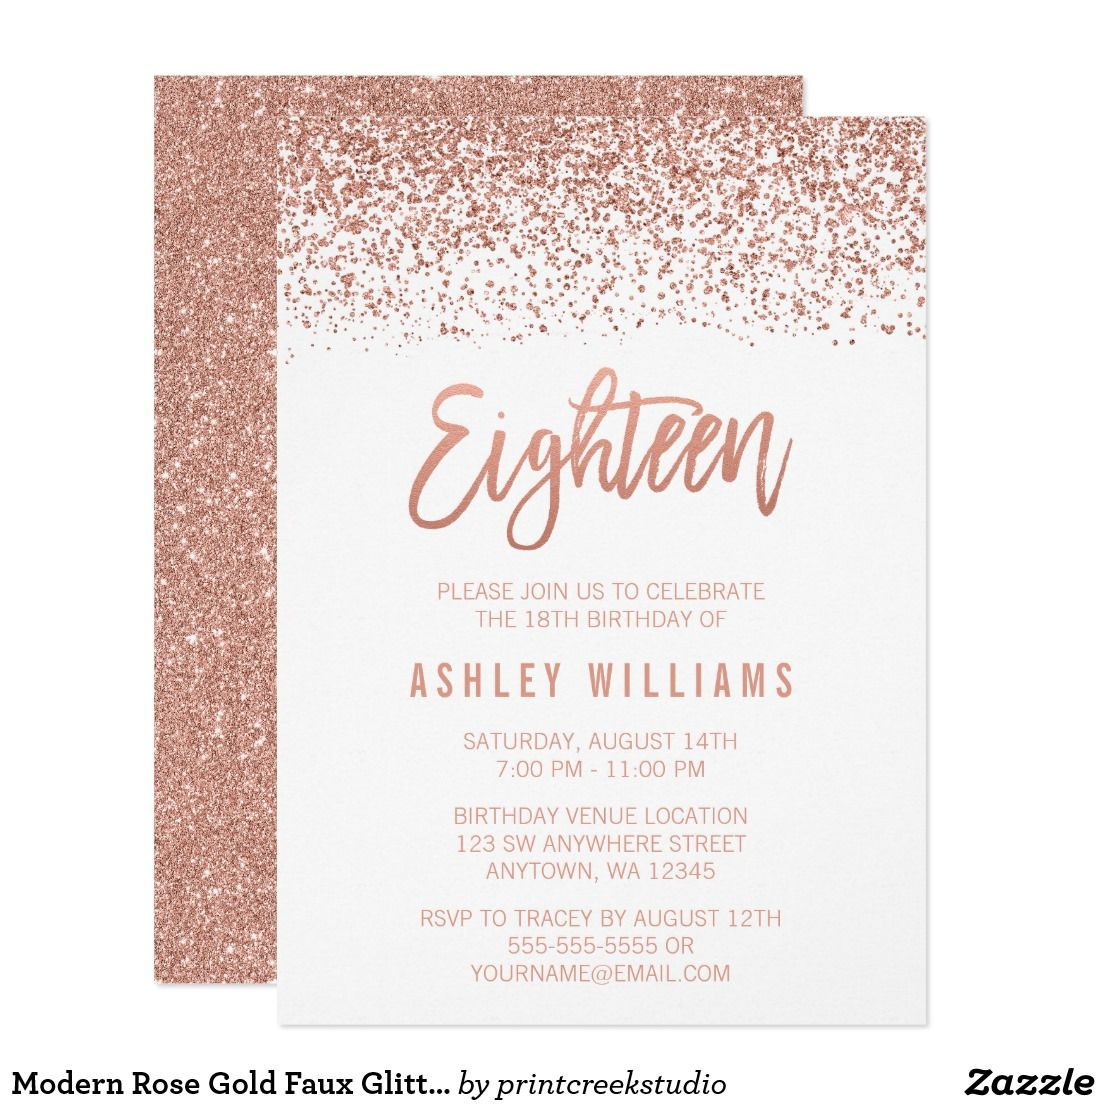 Modern Rose Gold Faux Glitter 18th Birthday Card Glamorous Eighteenth Invitations Designs Are Flat Printed